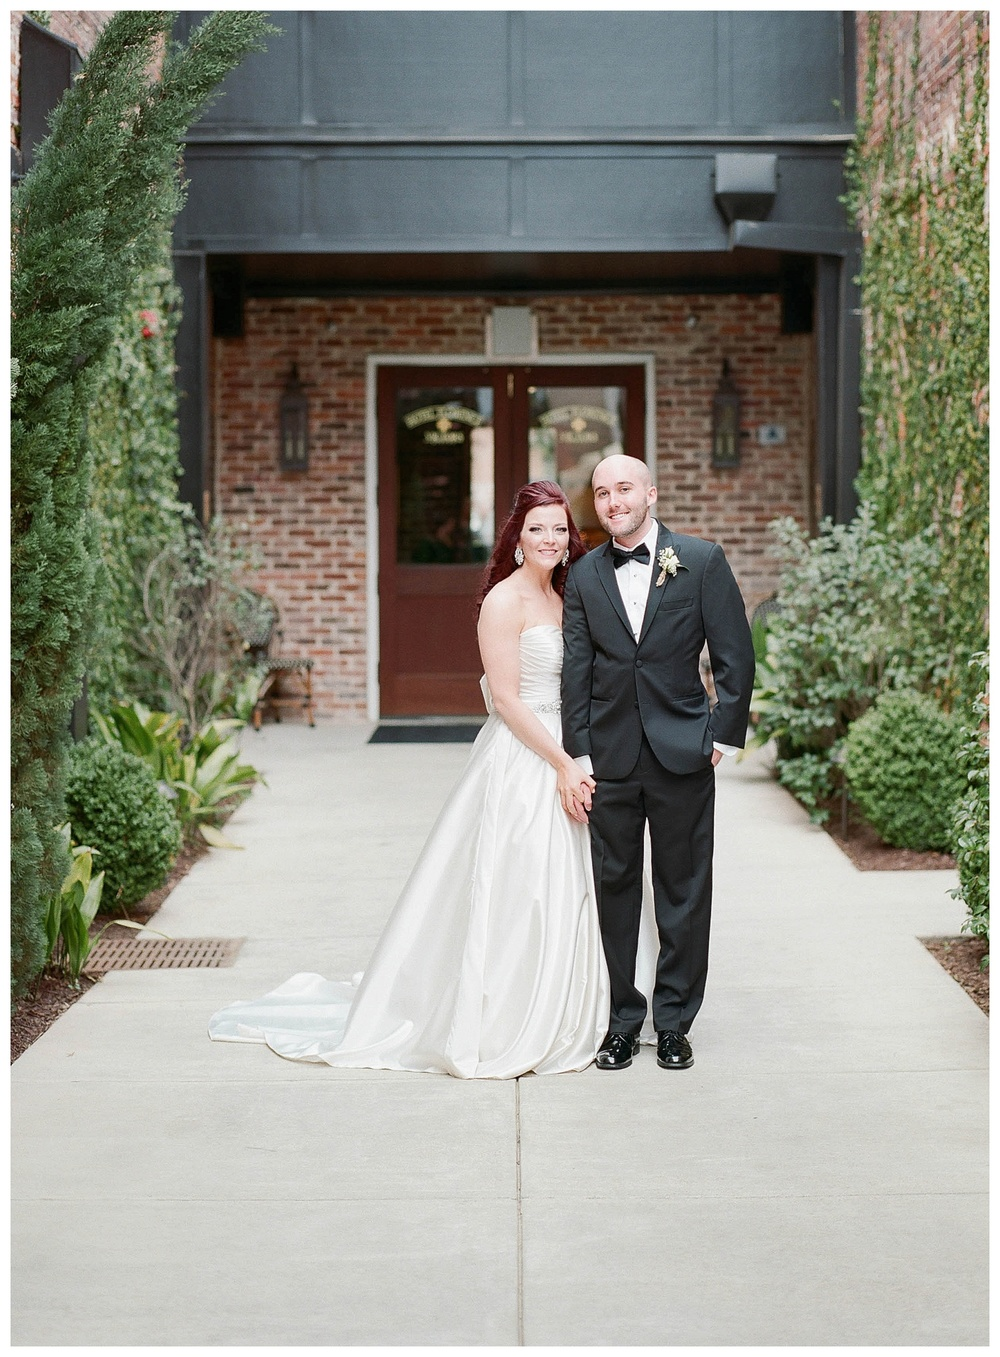 couple's wedding photo for wedding at Hotel Florence, SC